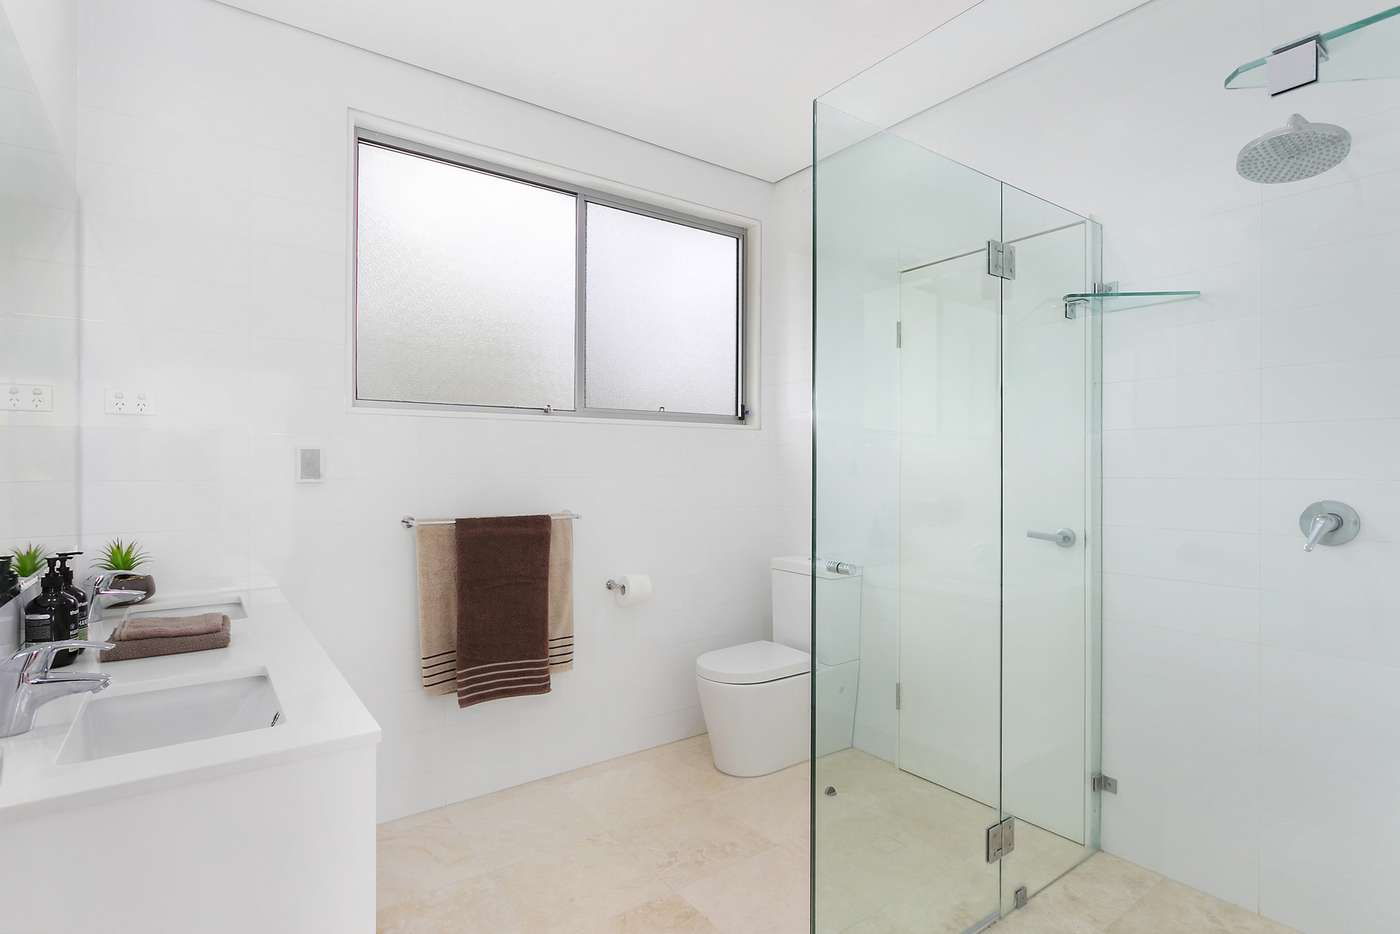 Sixth view of Homely townhouse listing, 2/237 Burraneer Bay Road, Caringbah South NSW 2229